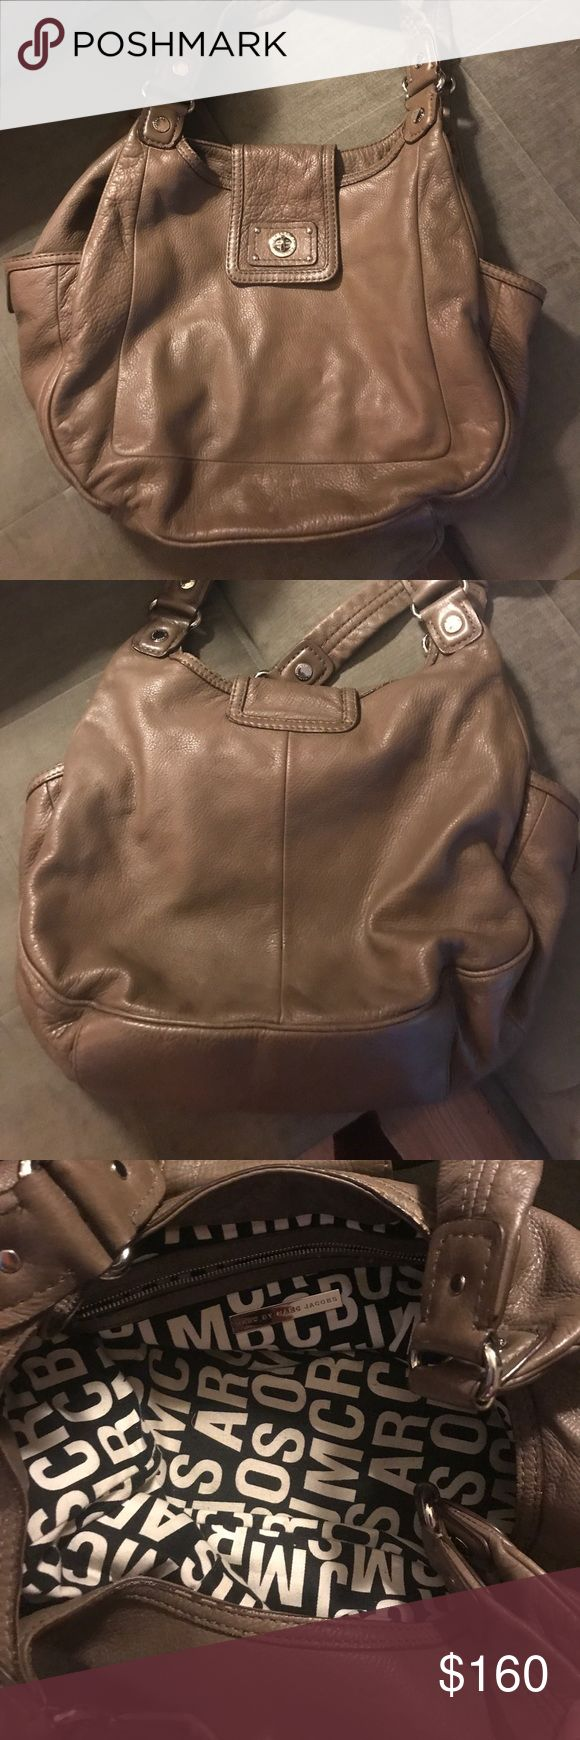 Marc Jacobs purse Brown Marc Jacobs purse. Used but taken care of with lots of love Marc Jacobs Bags Satchels